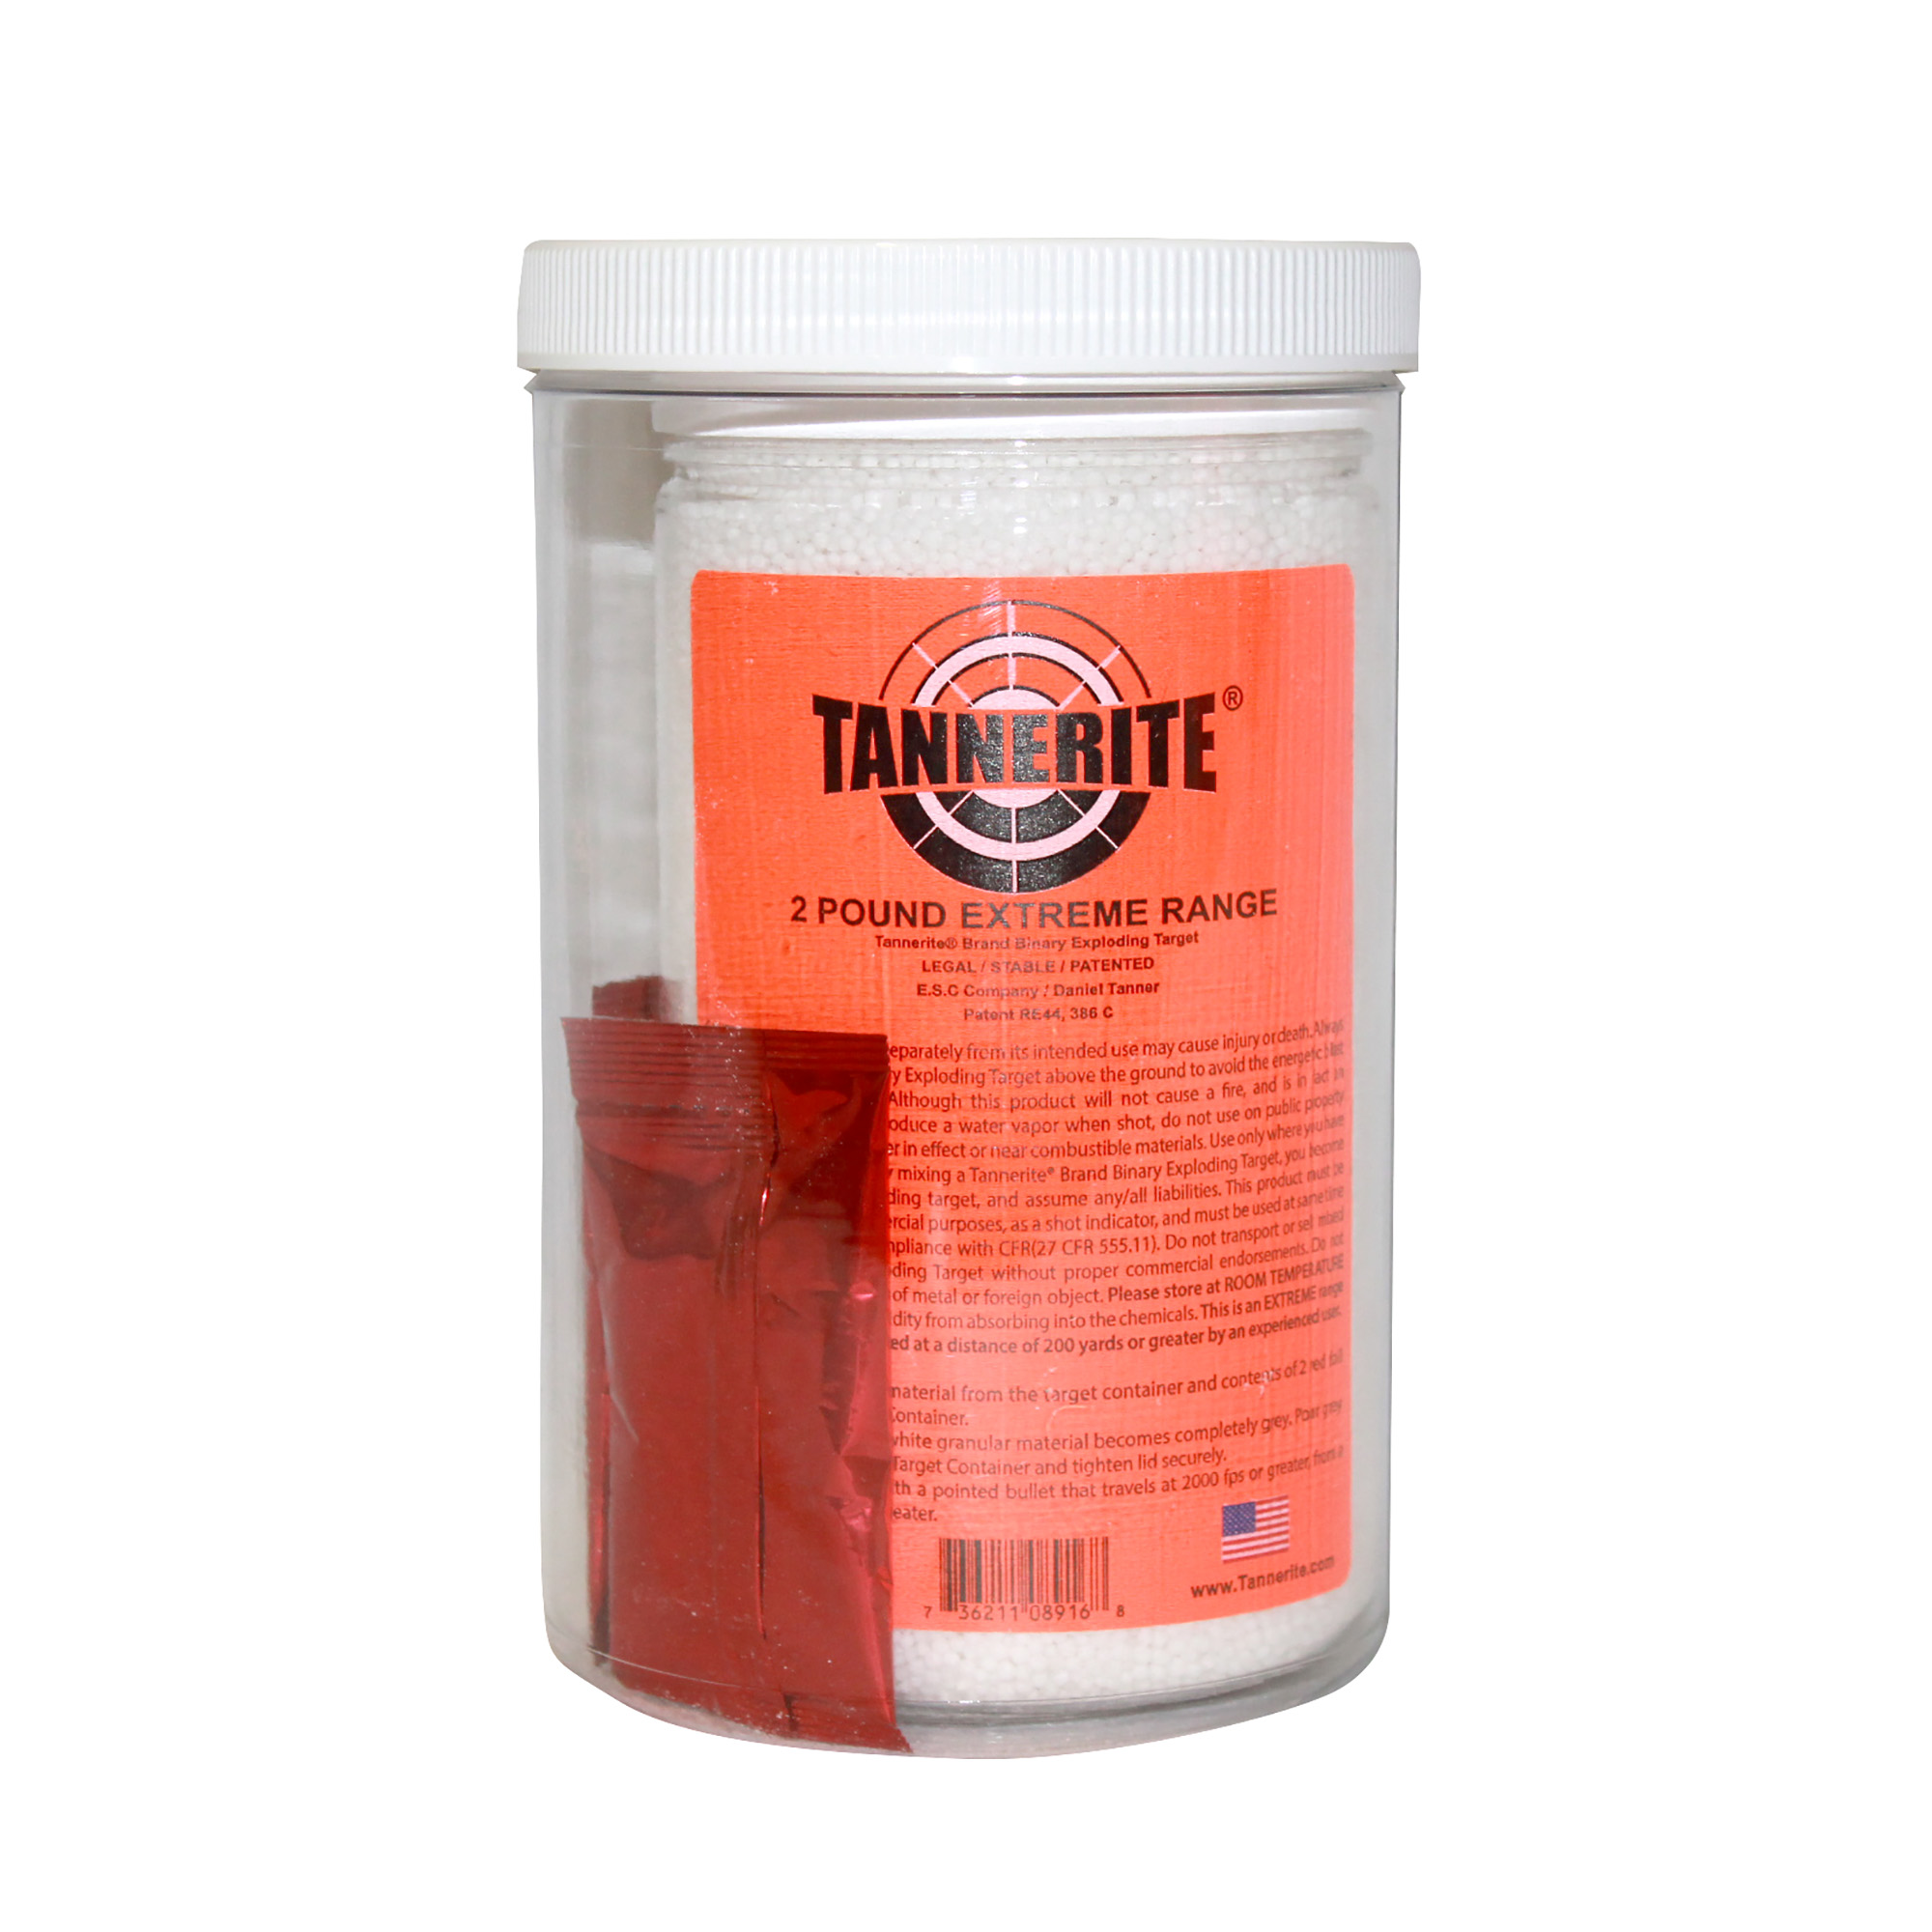 """Tannerite (R) brand targets were specifically designed to be safe and non-flammable"""" whether it's sitting on a shelf"""" being mixed or used. When shot"""" it produces a water vapor and a thunderous boom resembling an explosion. Tannerite (R) brand targets are the shot indicator targets of choice for hunters"""" law enforcement"""" and U.S. armed services."""